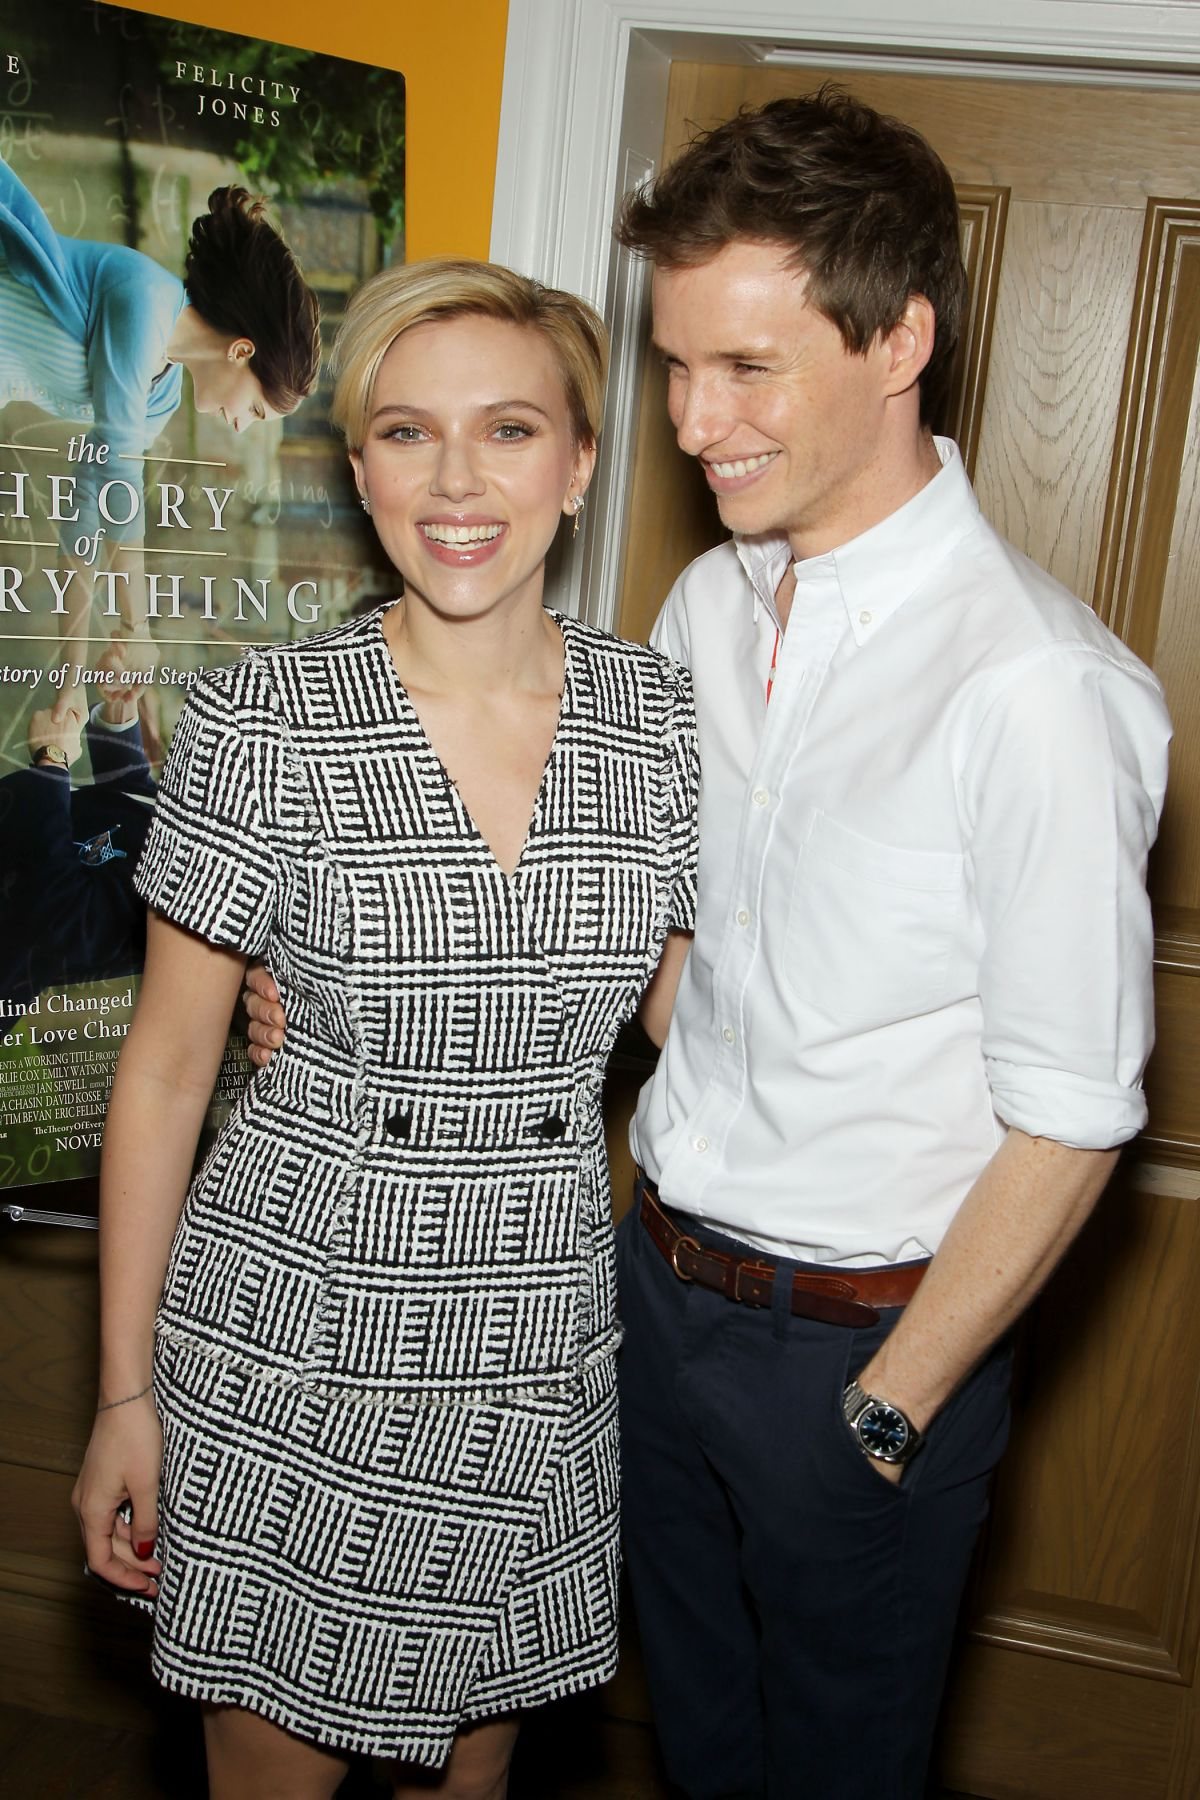 SCARLETT JOHANSSON at The Theory of Everything Screening in New York